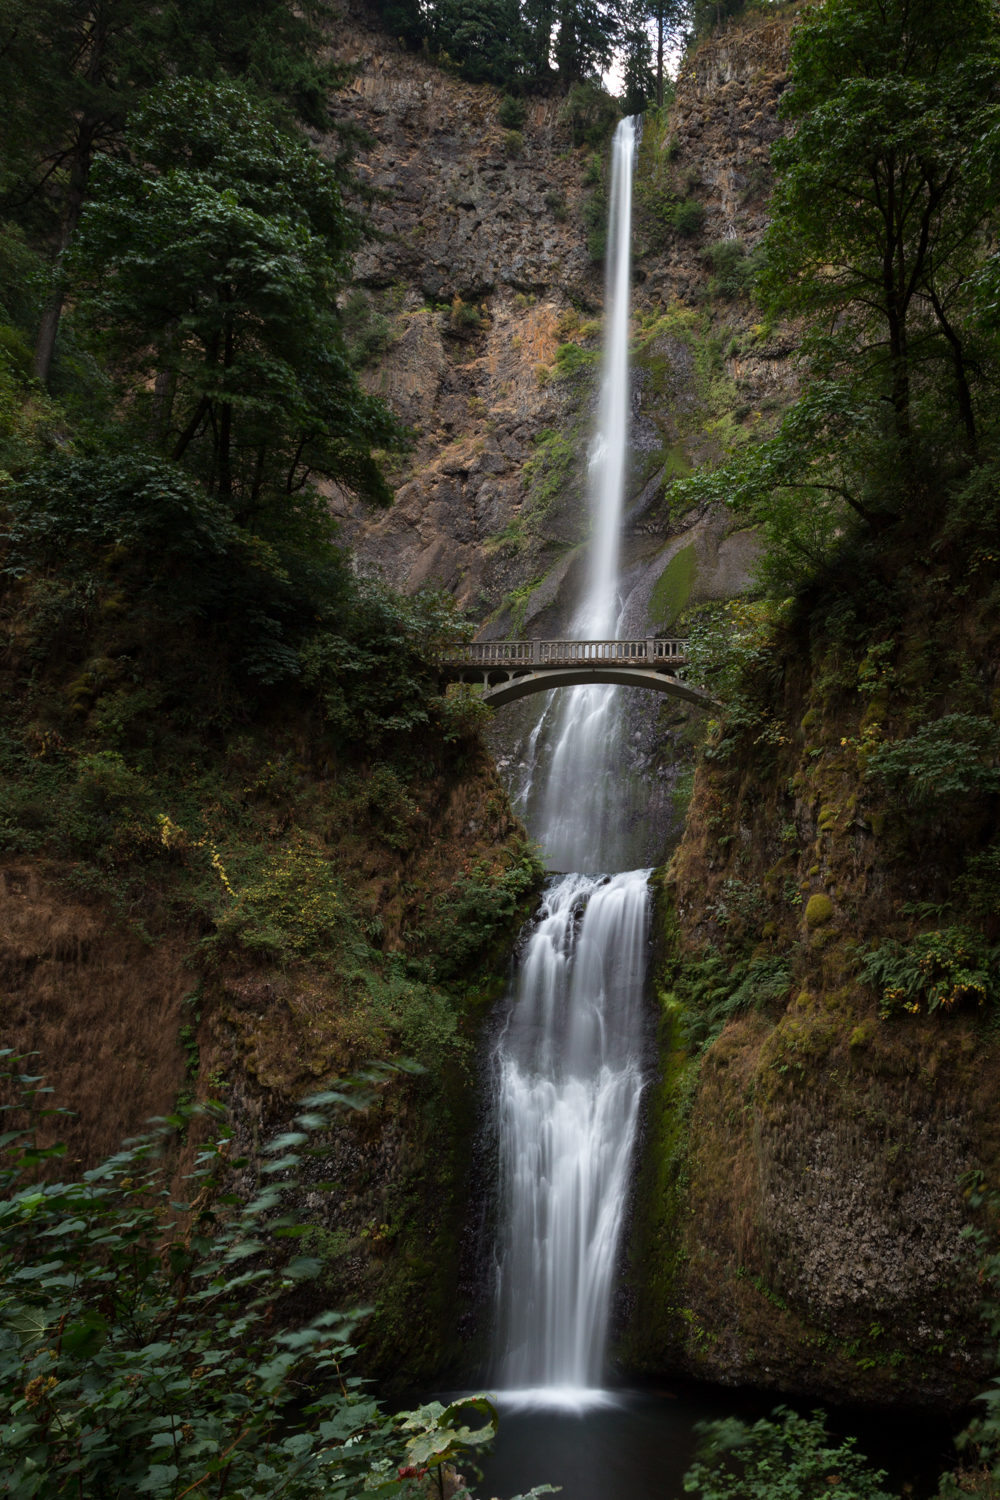 The full splendor of Multnomah Falls.  You can hike to the top of the falls...note the bridge.  You can get really wet there depending on the wind.